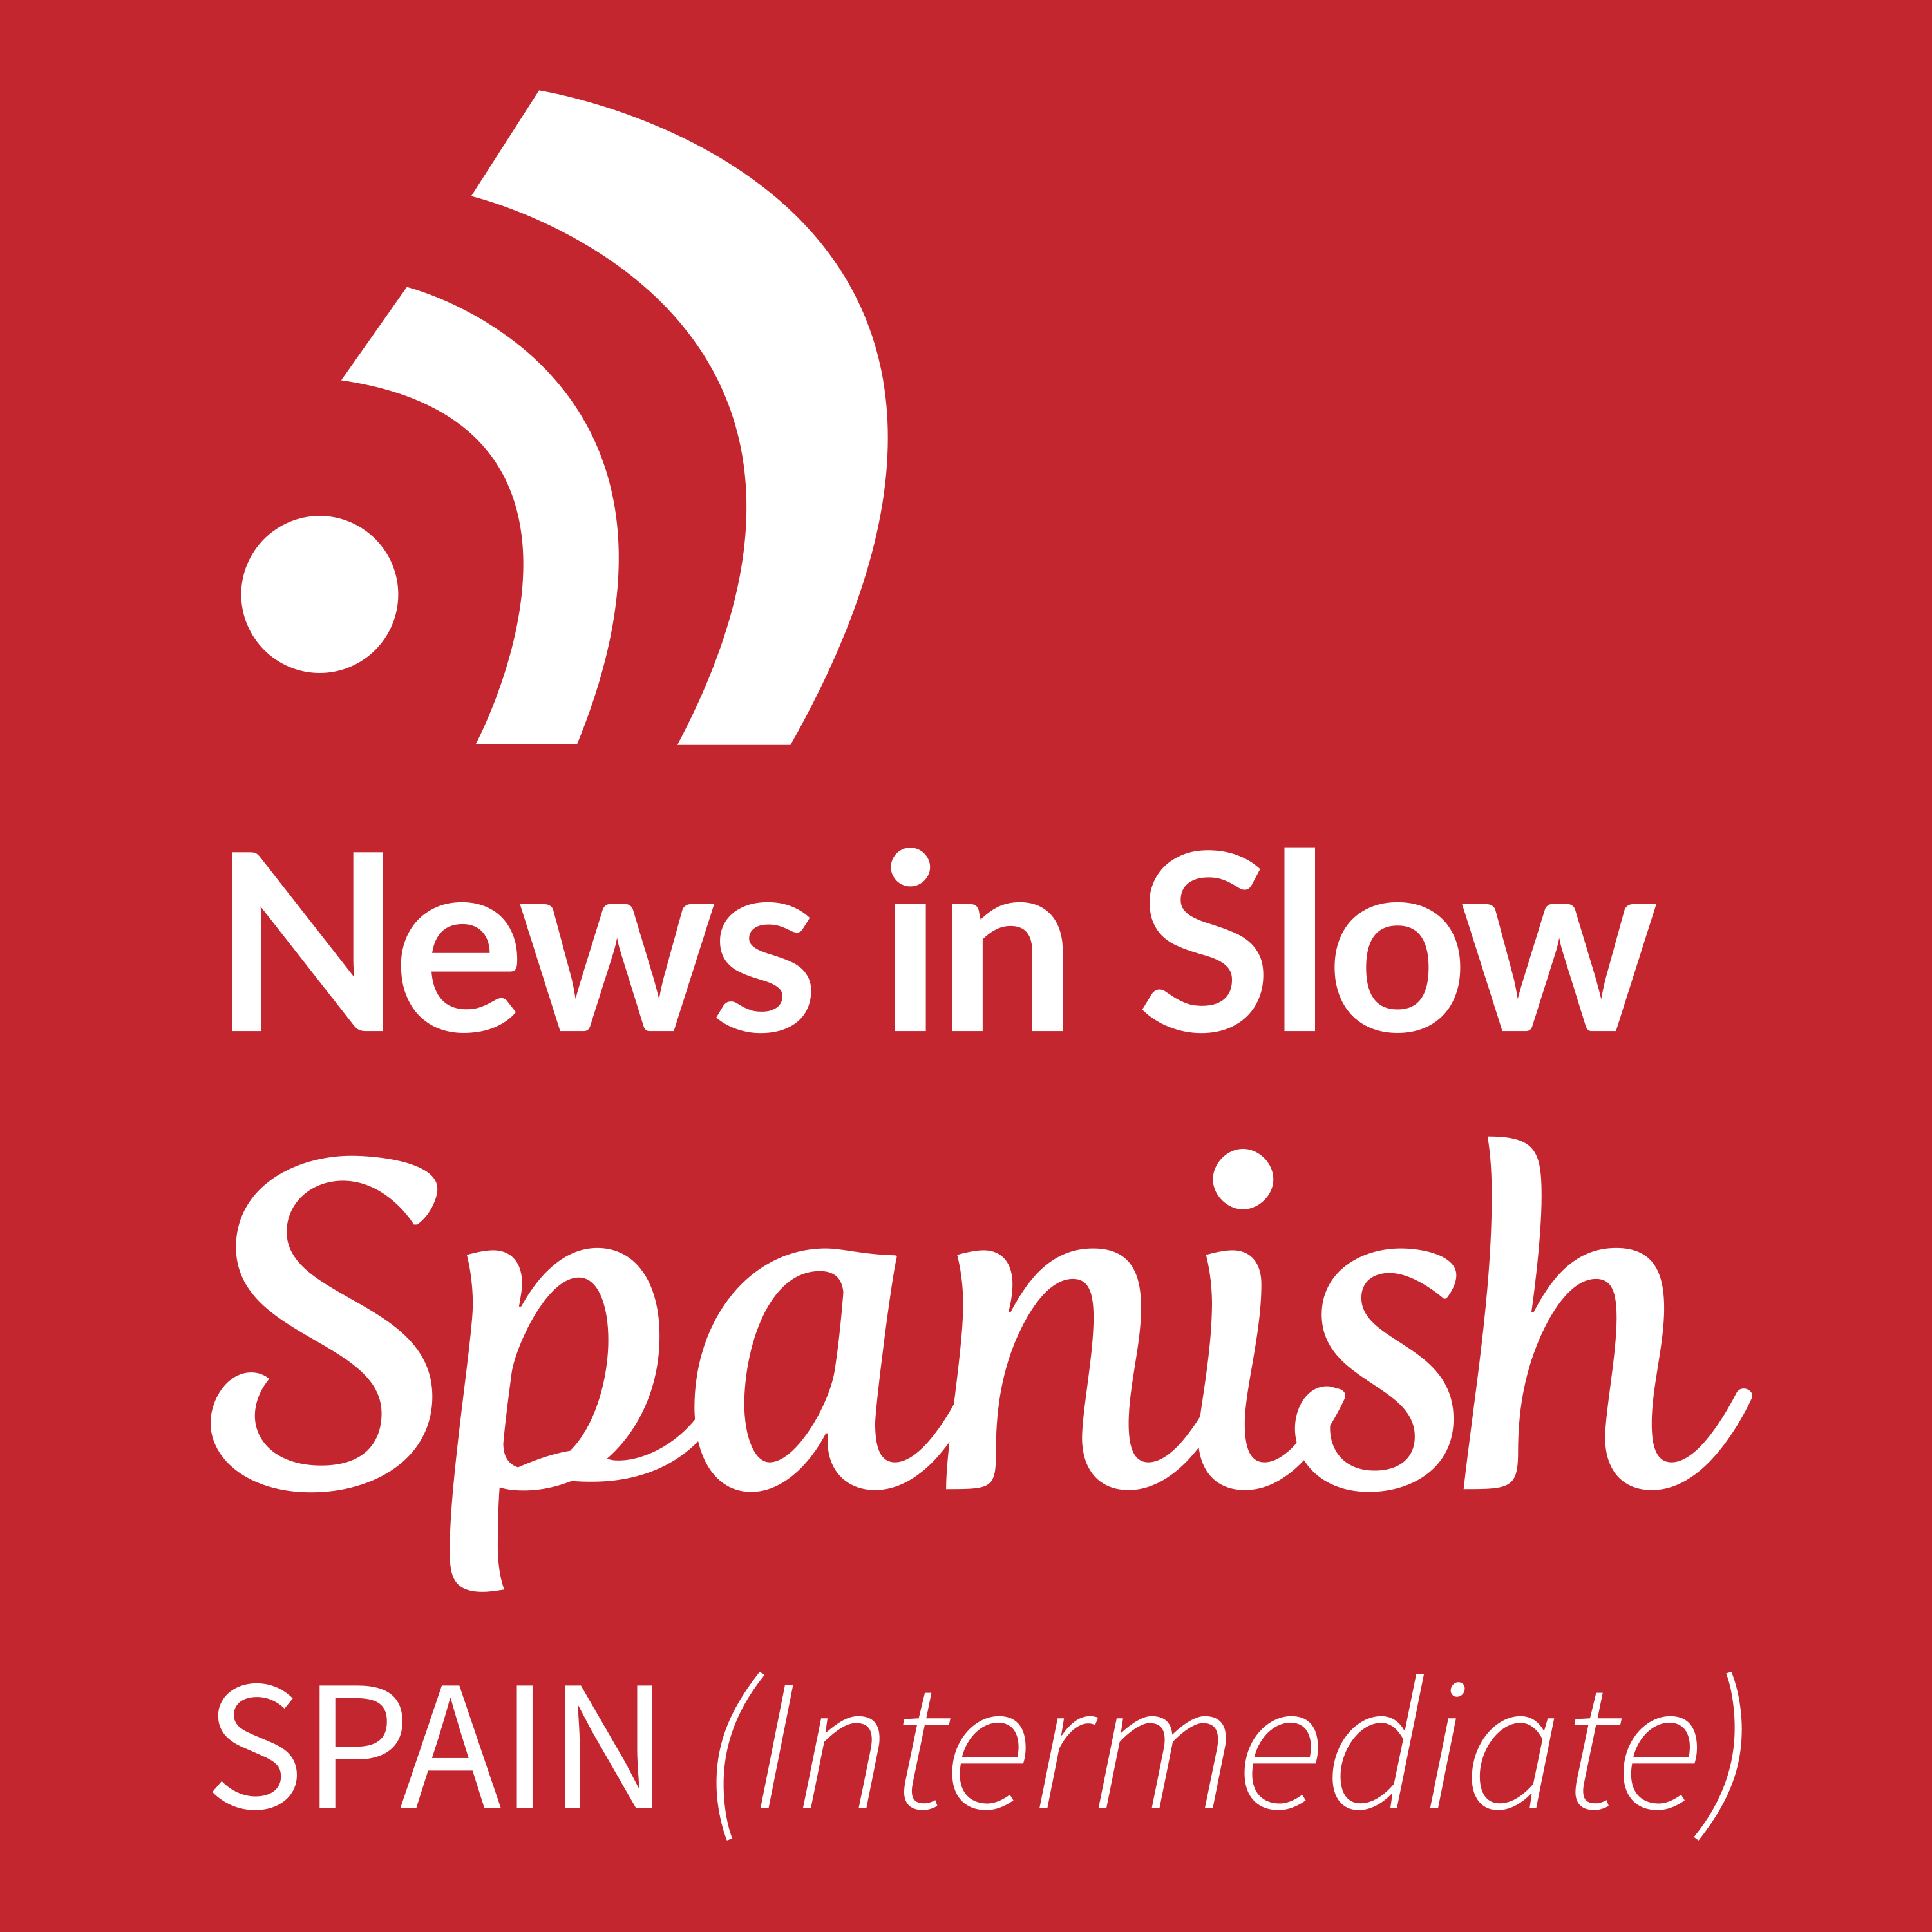 News in Slow Spanish - #356 - Language learning in the context of current events